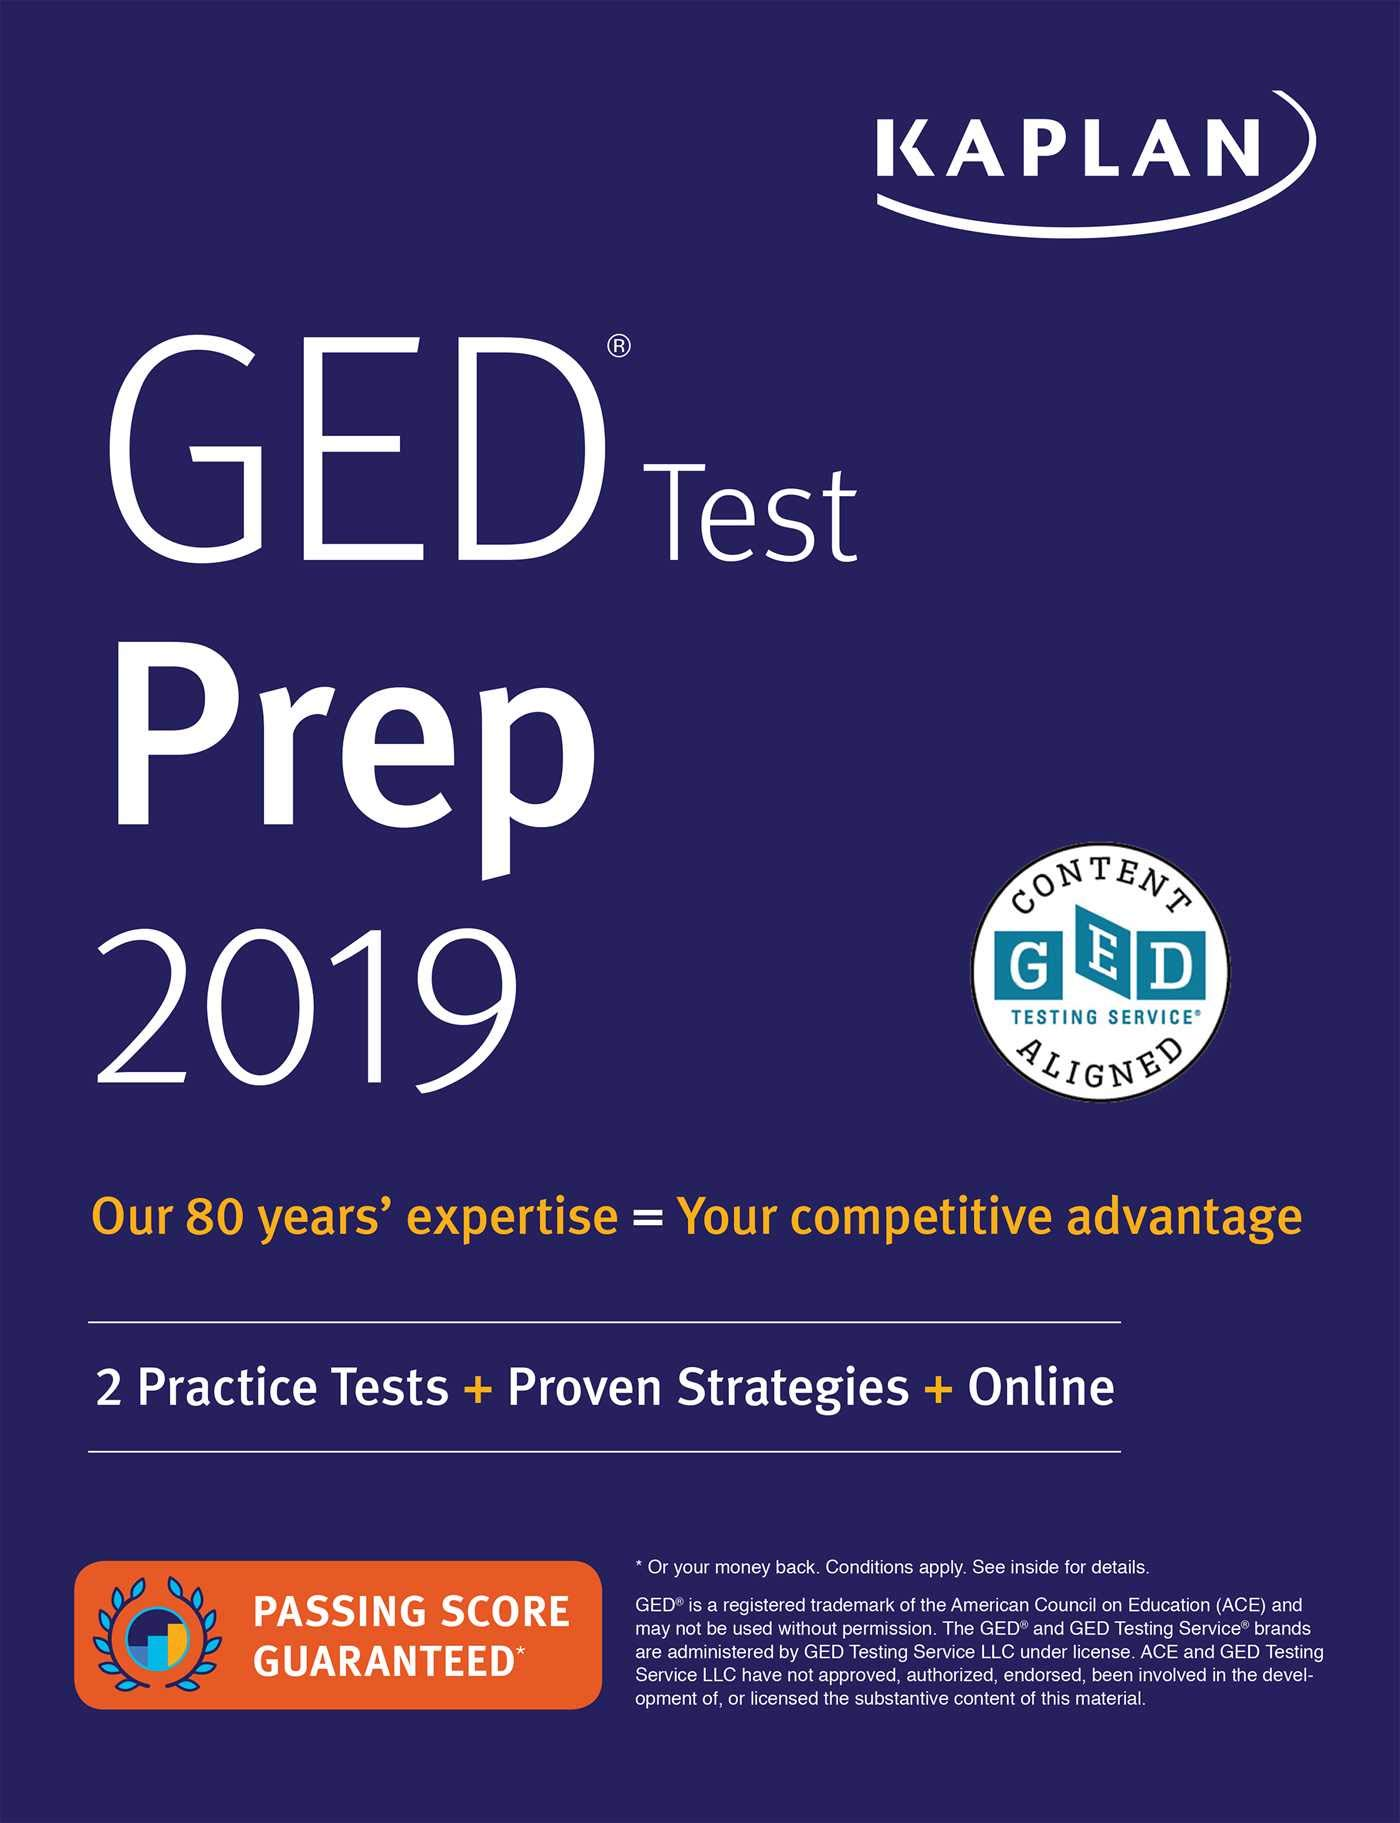 GED Test Prep 2019 Strategies product image